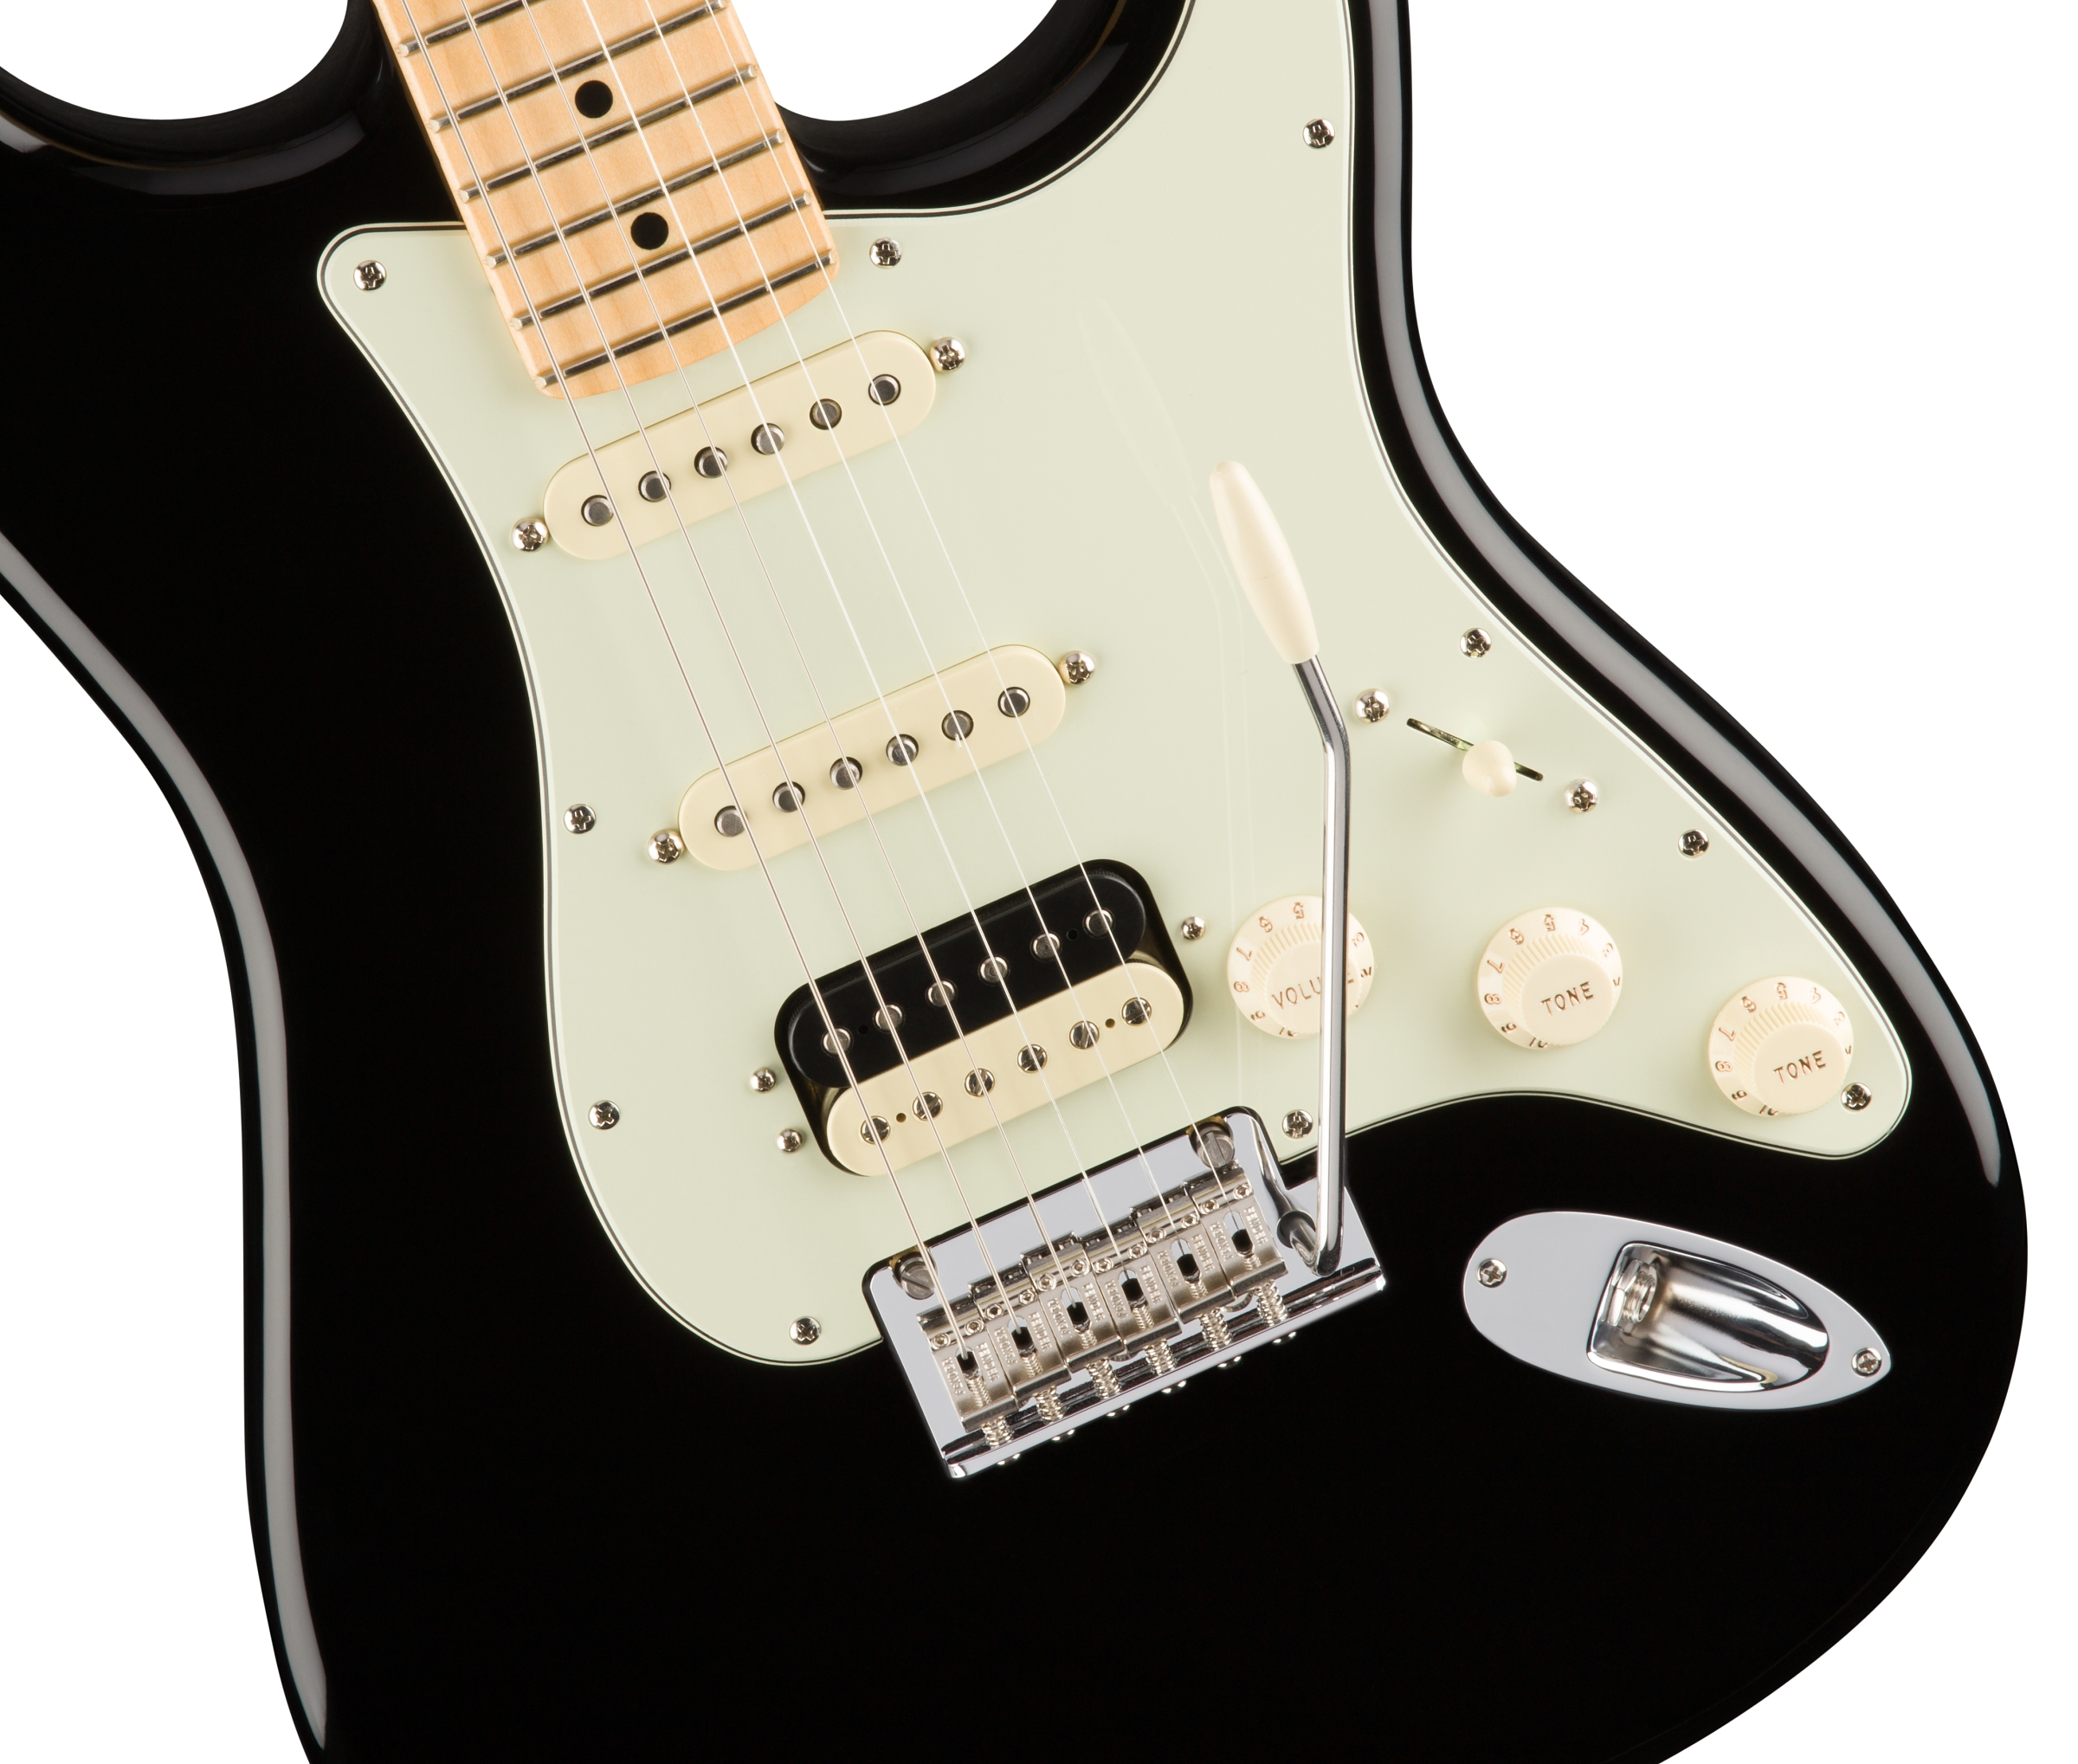 Beautiful Strat Style Guitar Tall Ibanez Wiring Round Dragonfire Pickups Wiring Diagram Les Paul 3 Pickup Wiring Youthful Dimarzio Color Code BrightCar Alarm Installation Instructions Fender American Pro Stratocaster® HSS ShawBucker™, Maple ..